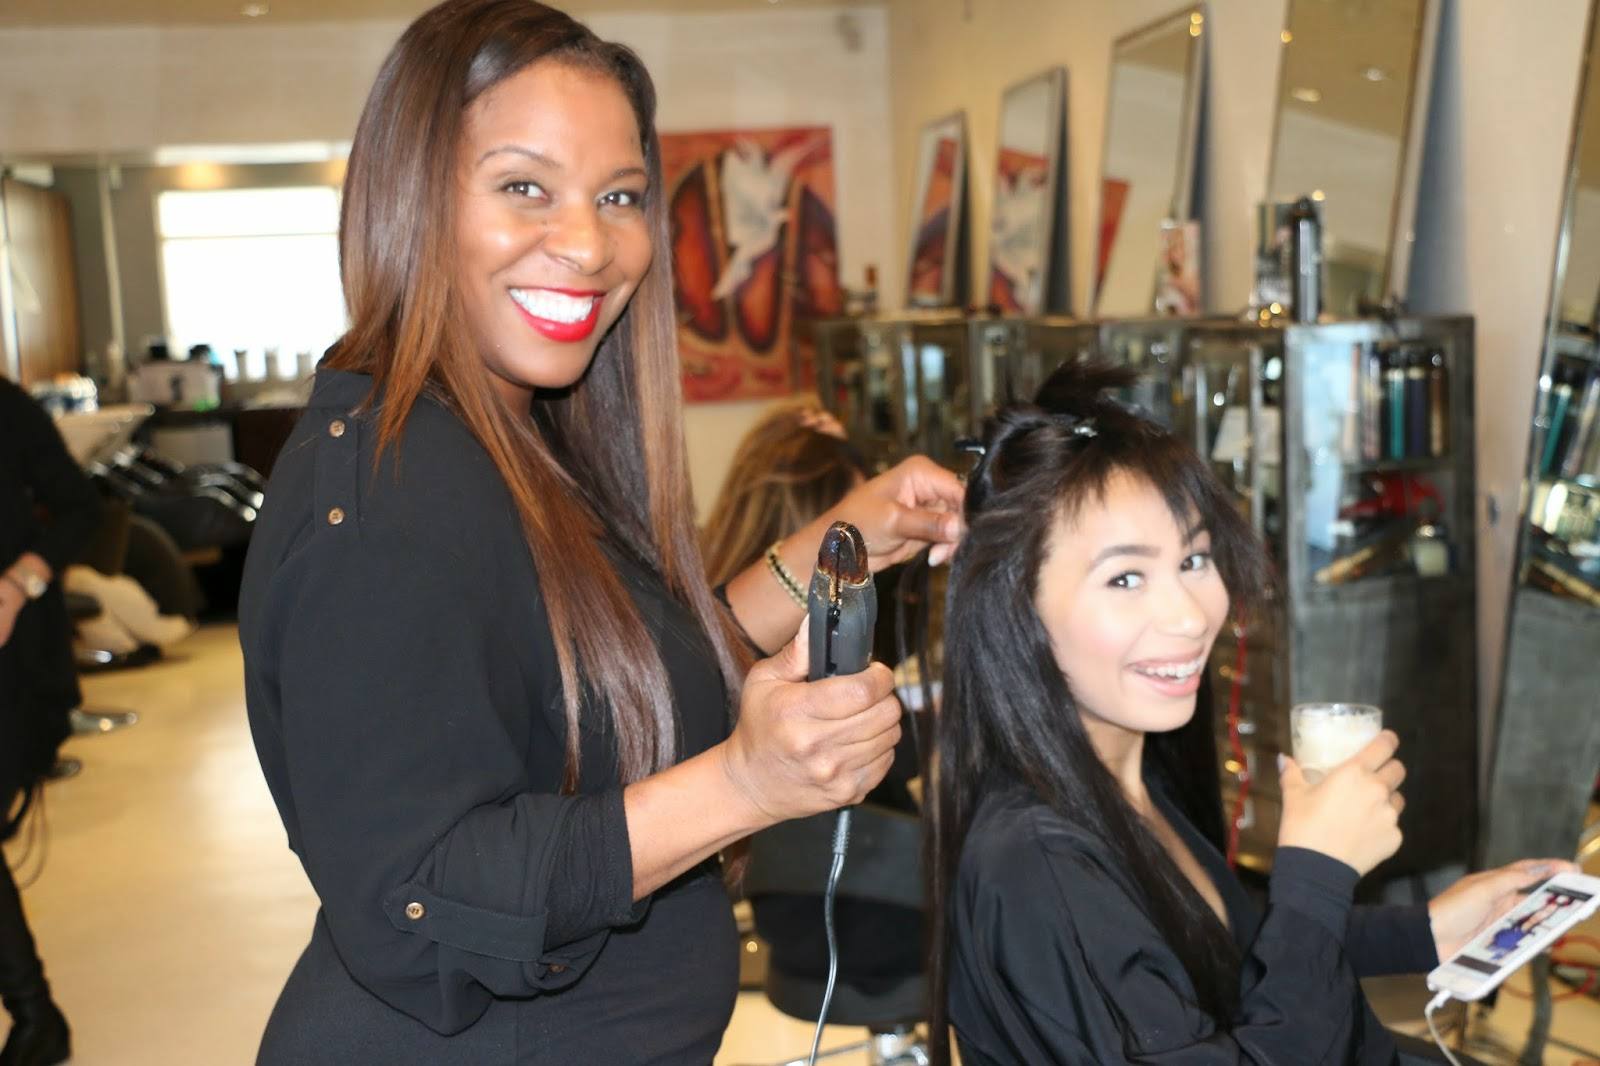 Brighton salon hair extensions the hair extensions salon in at brighton salon our go to girl on all types of hair extensions on any hair texture would most definite go to our beautiful shauneil evans pmusecretfo Gallery